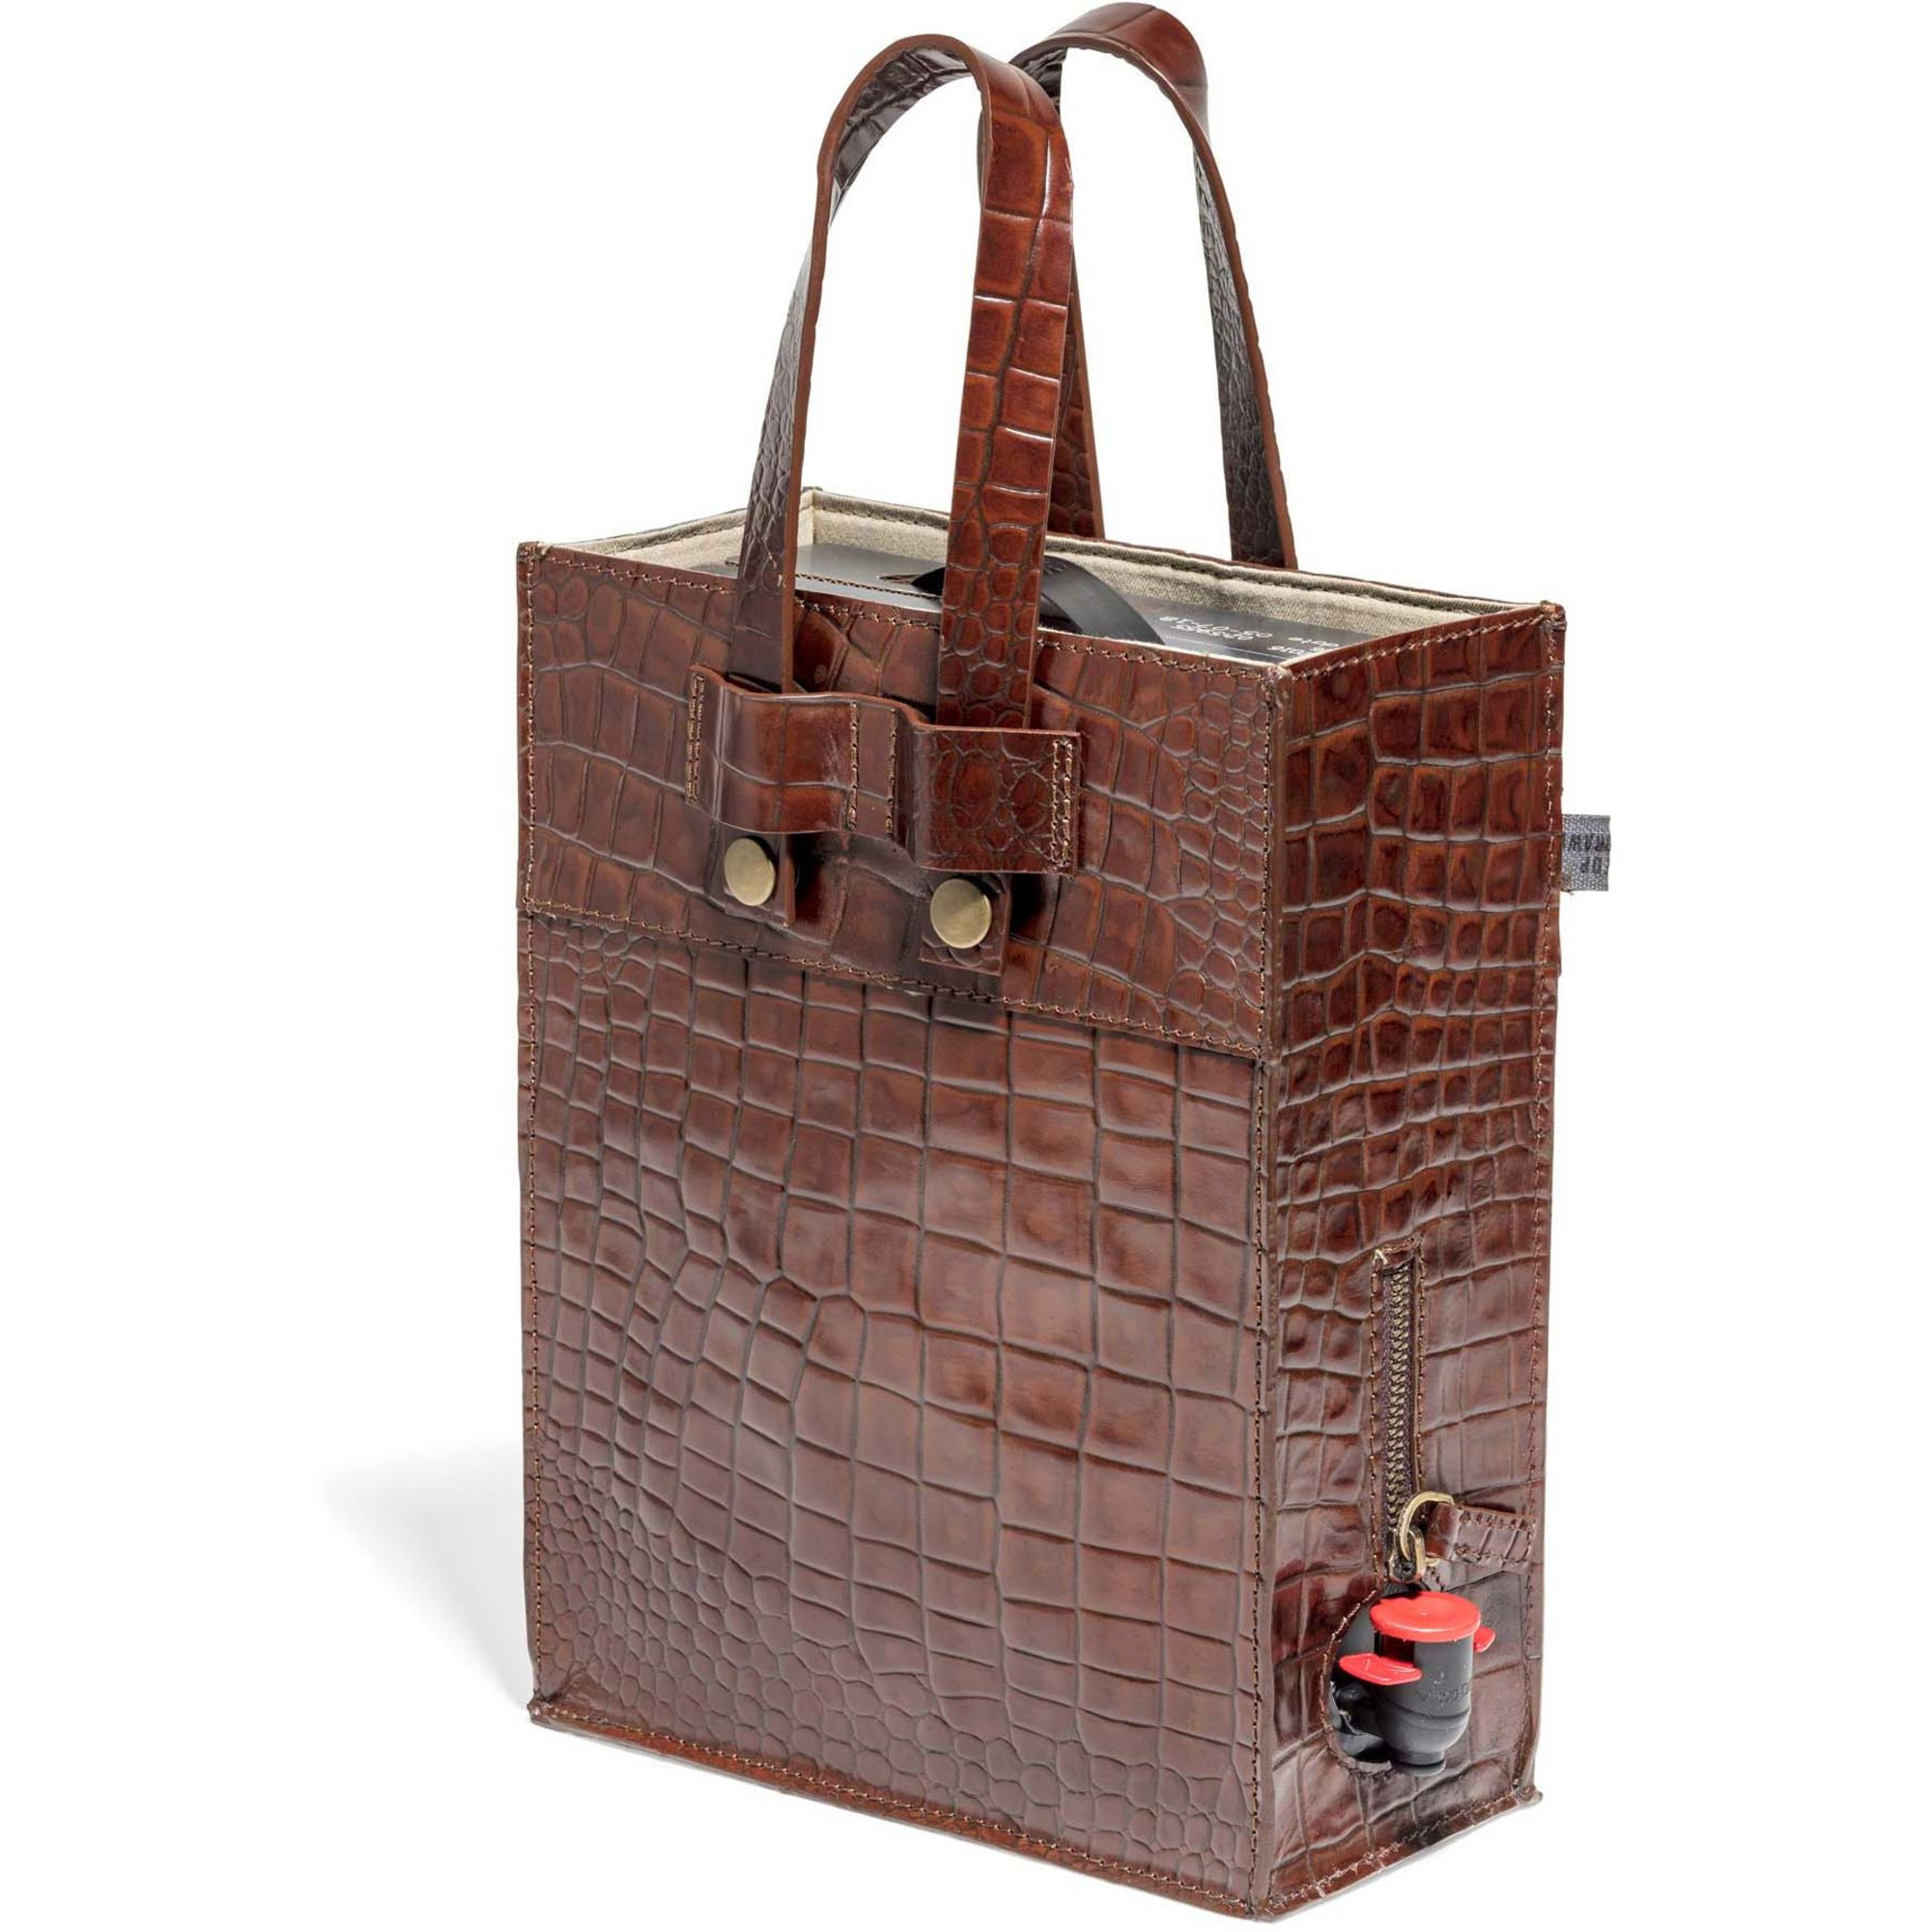 Top Drawer Bag in box i Croco mönster, Dk Cognac, 3 lit